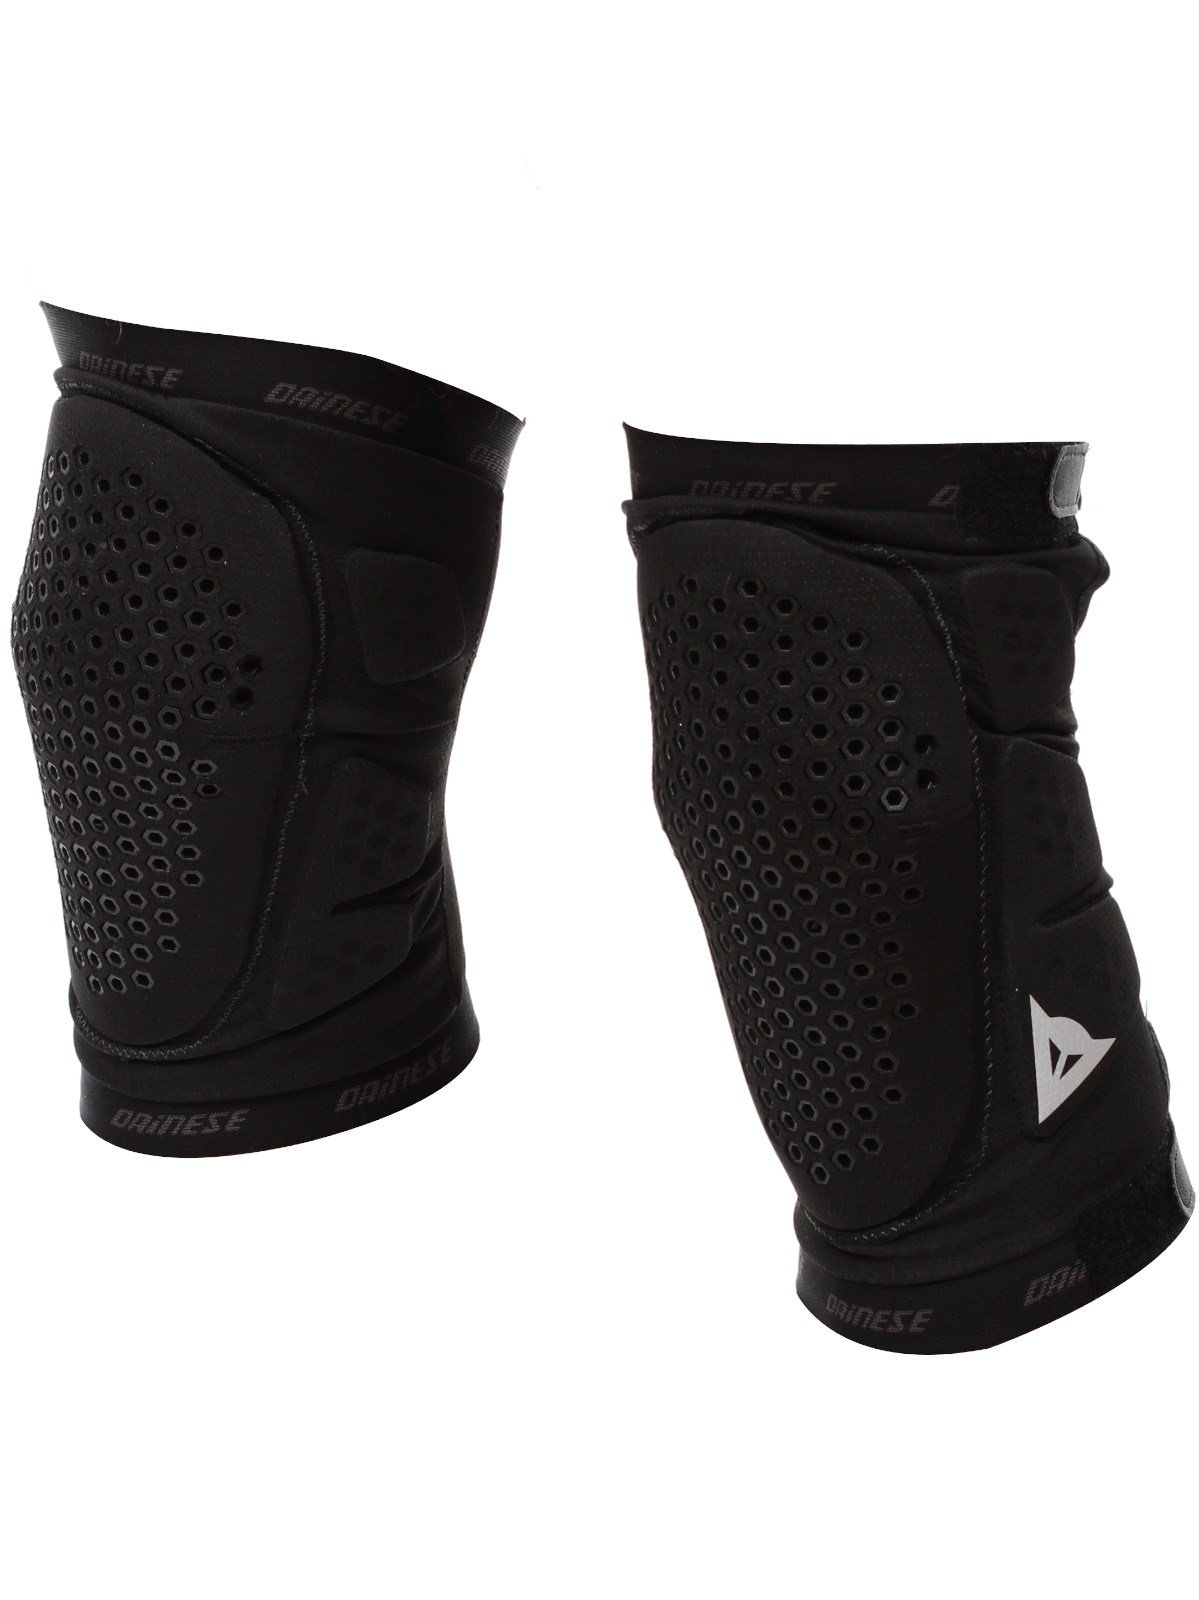 Dainese Black 2017 Trail Skins Pair Of Mtb Knee Pad (L, Black)